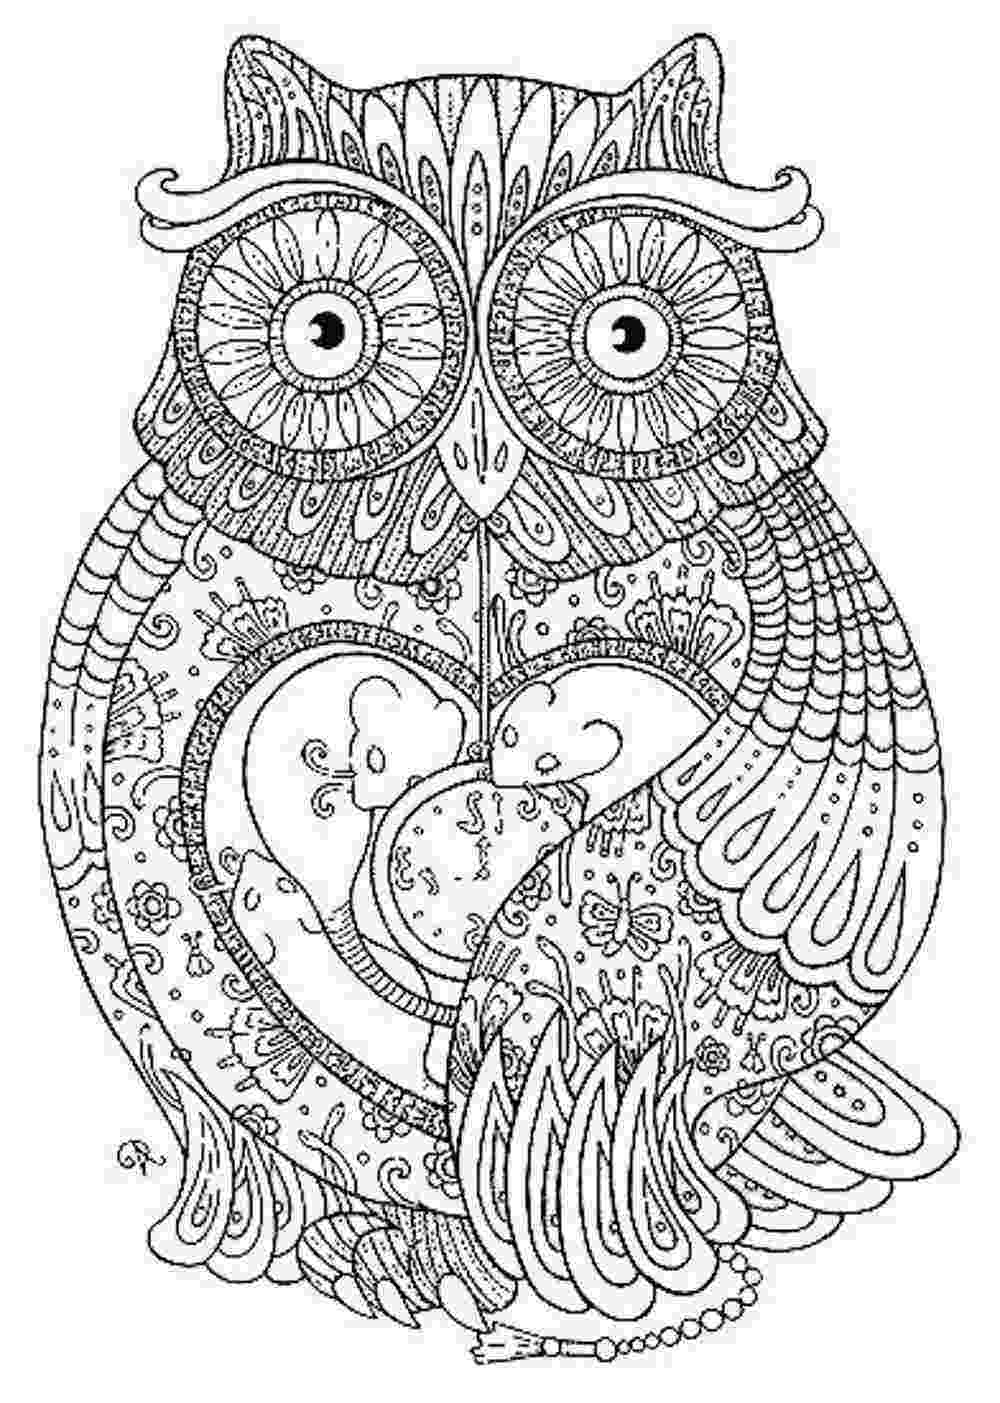 colouring pages for adults animals 20 free adult colouring pages the organised housewife colouring adults pages for animals